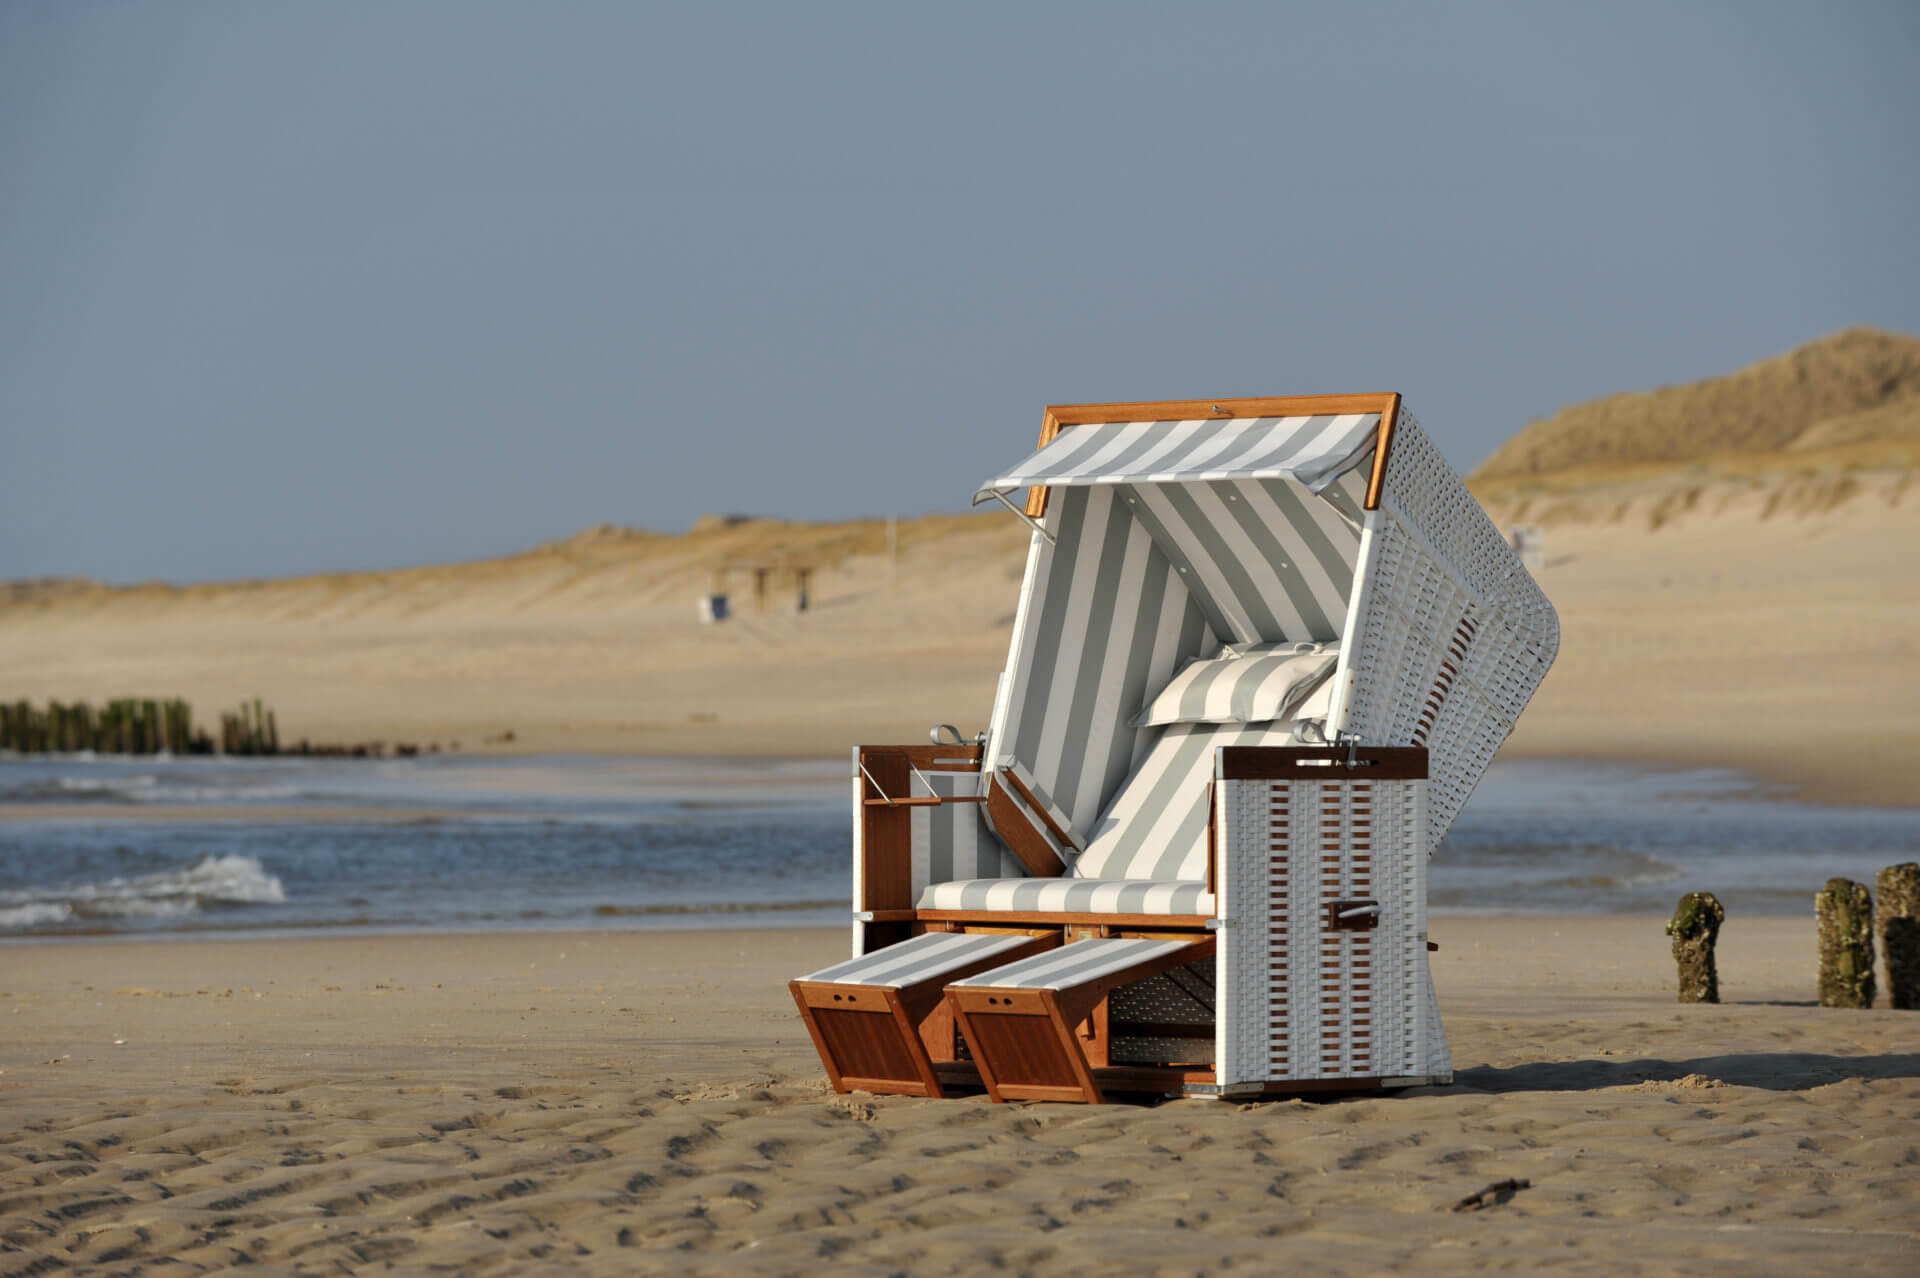 strandkorb manufaktur trautmann sylt rugbyclubeemland. Black Bedroom Furniture Sets. Home Design Ideas